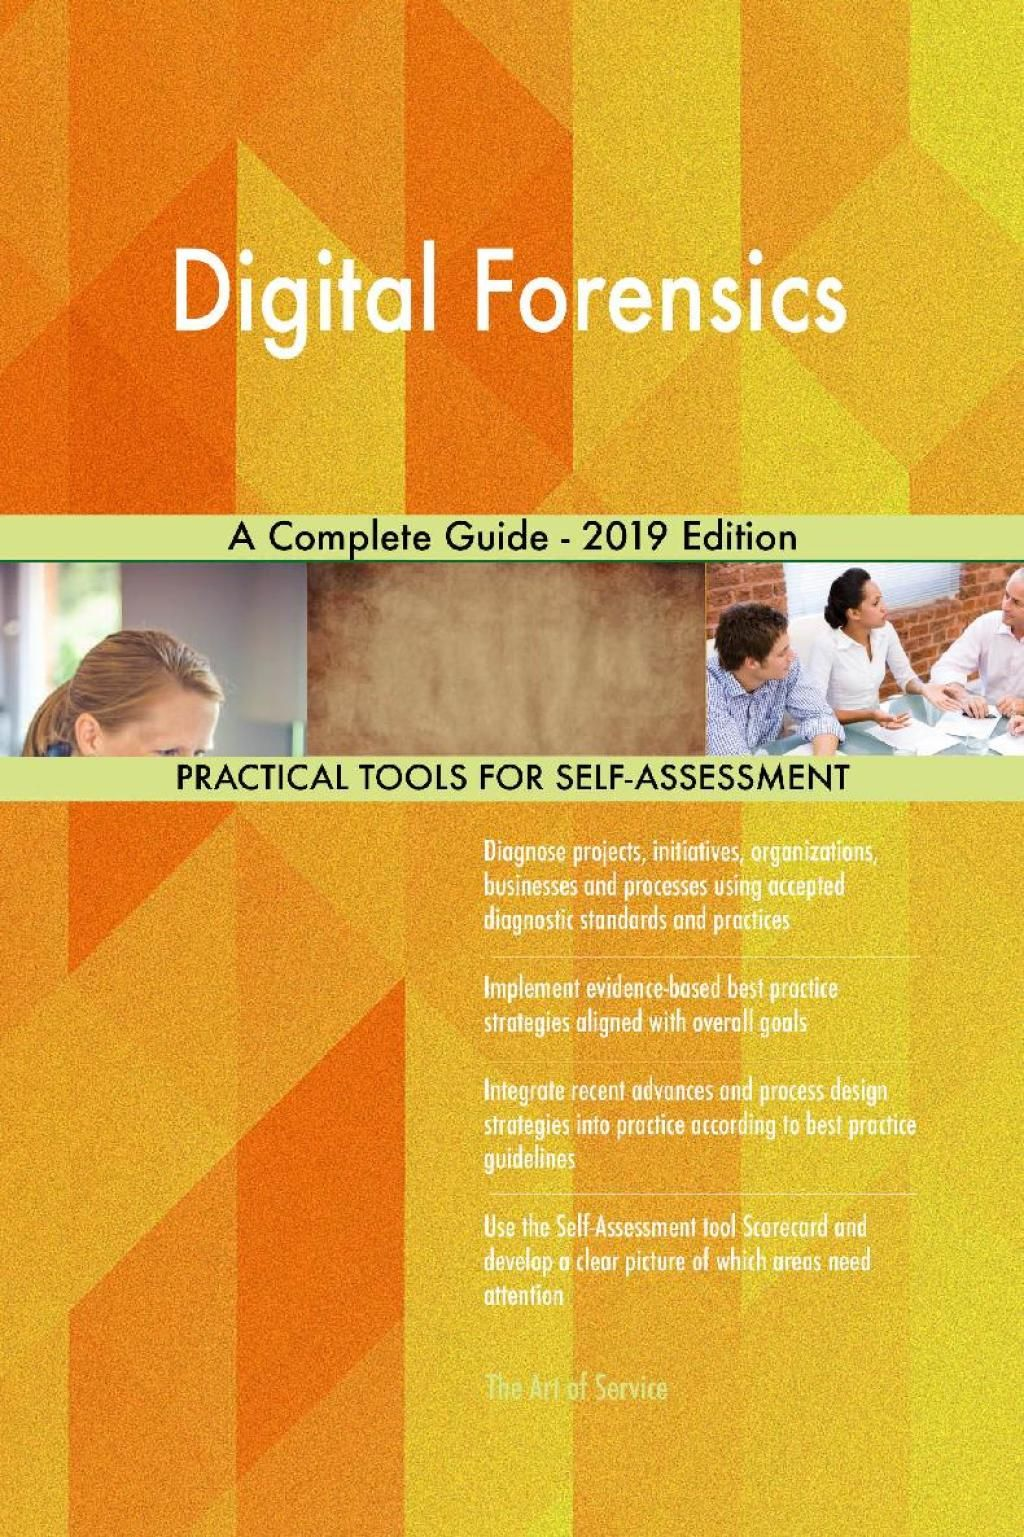 Digital Forensics A Complete Guide 2019 Edition (eBook